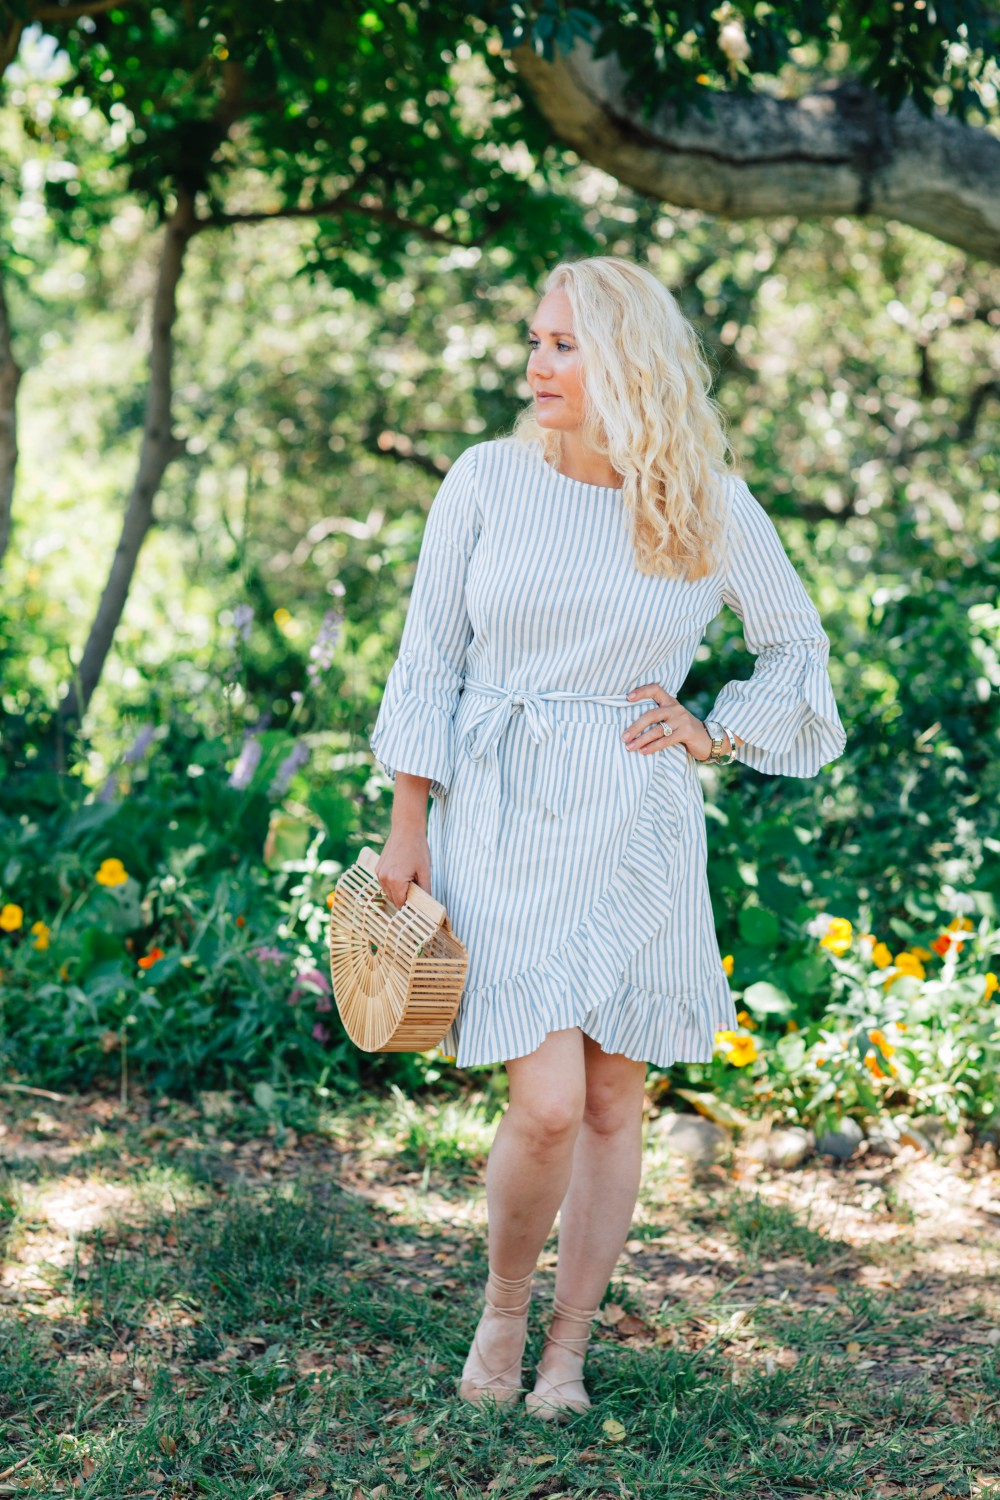 4th of July Picnic Outfit-Outfit Inspiration-Who What Wear for Target-Summer Style-Have Need Want-4th of July-July Fourth Outfit 4